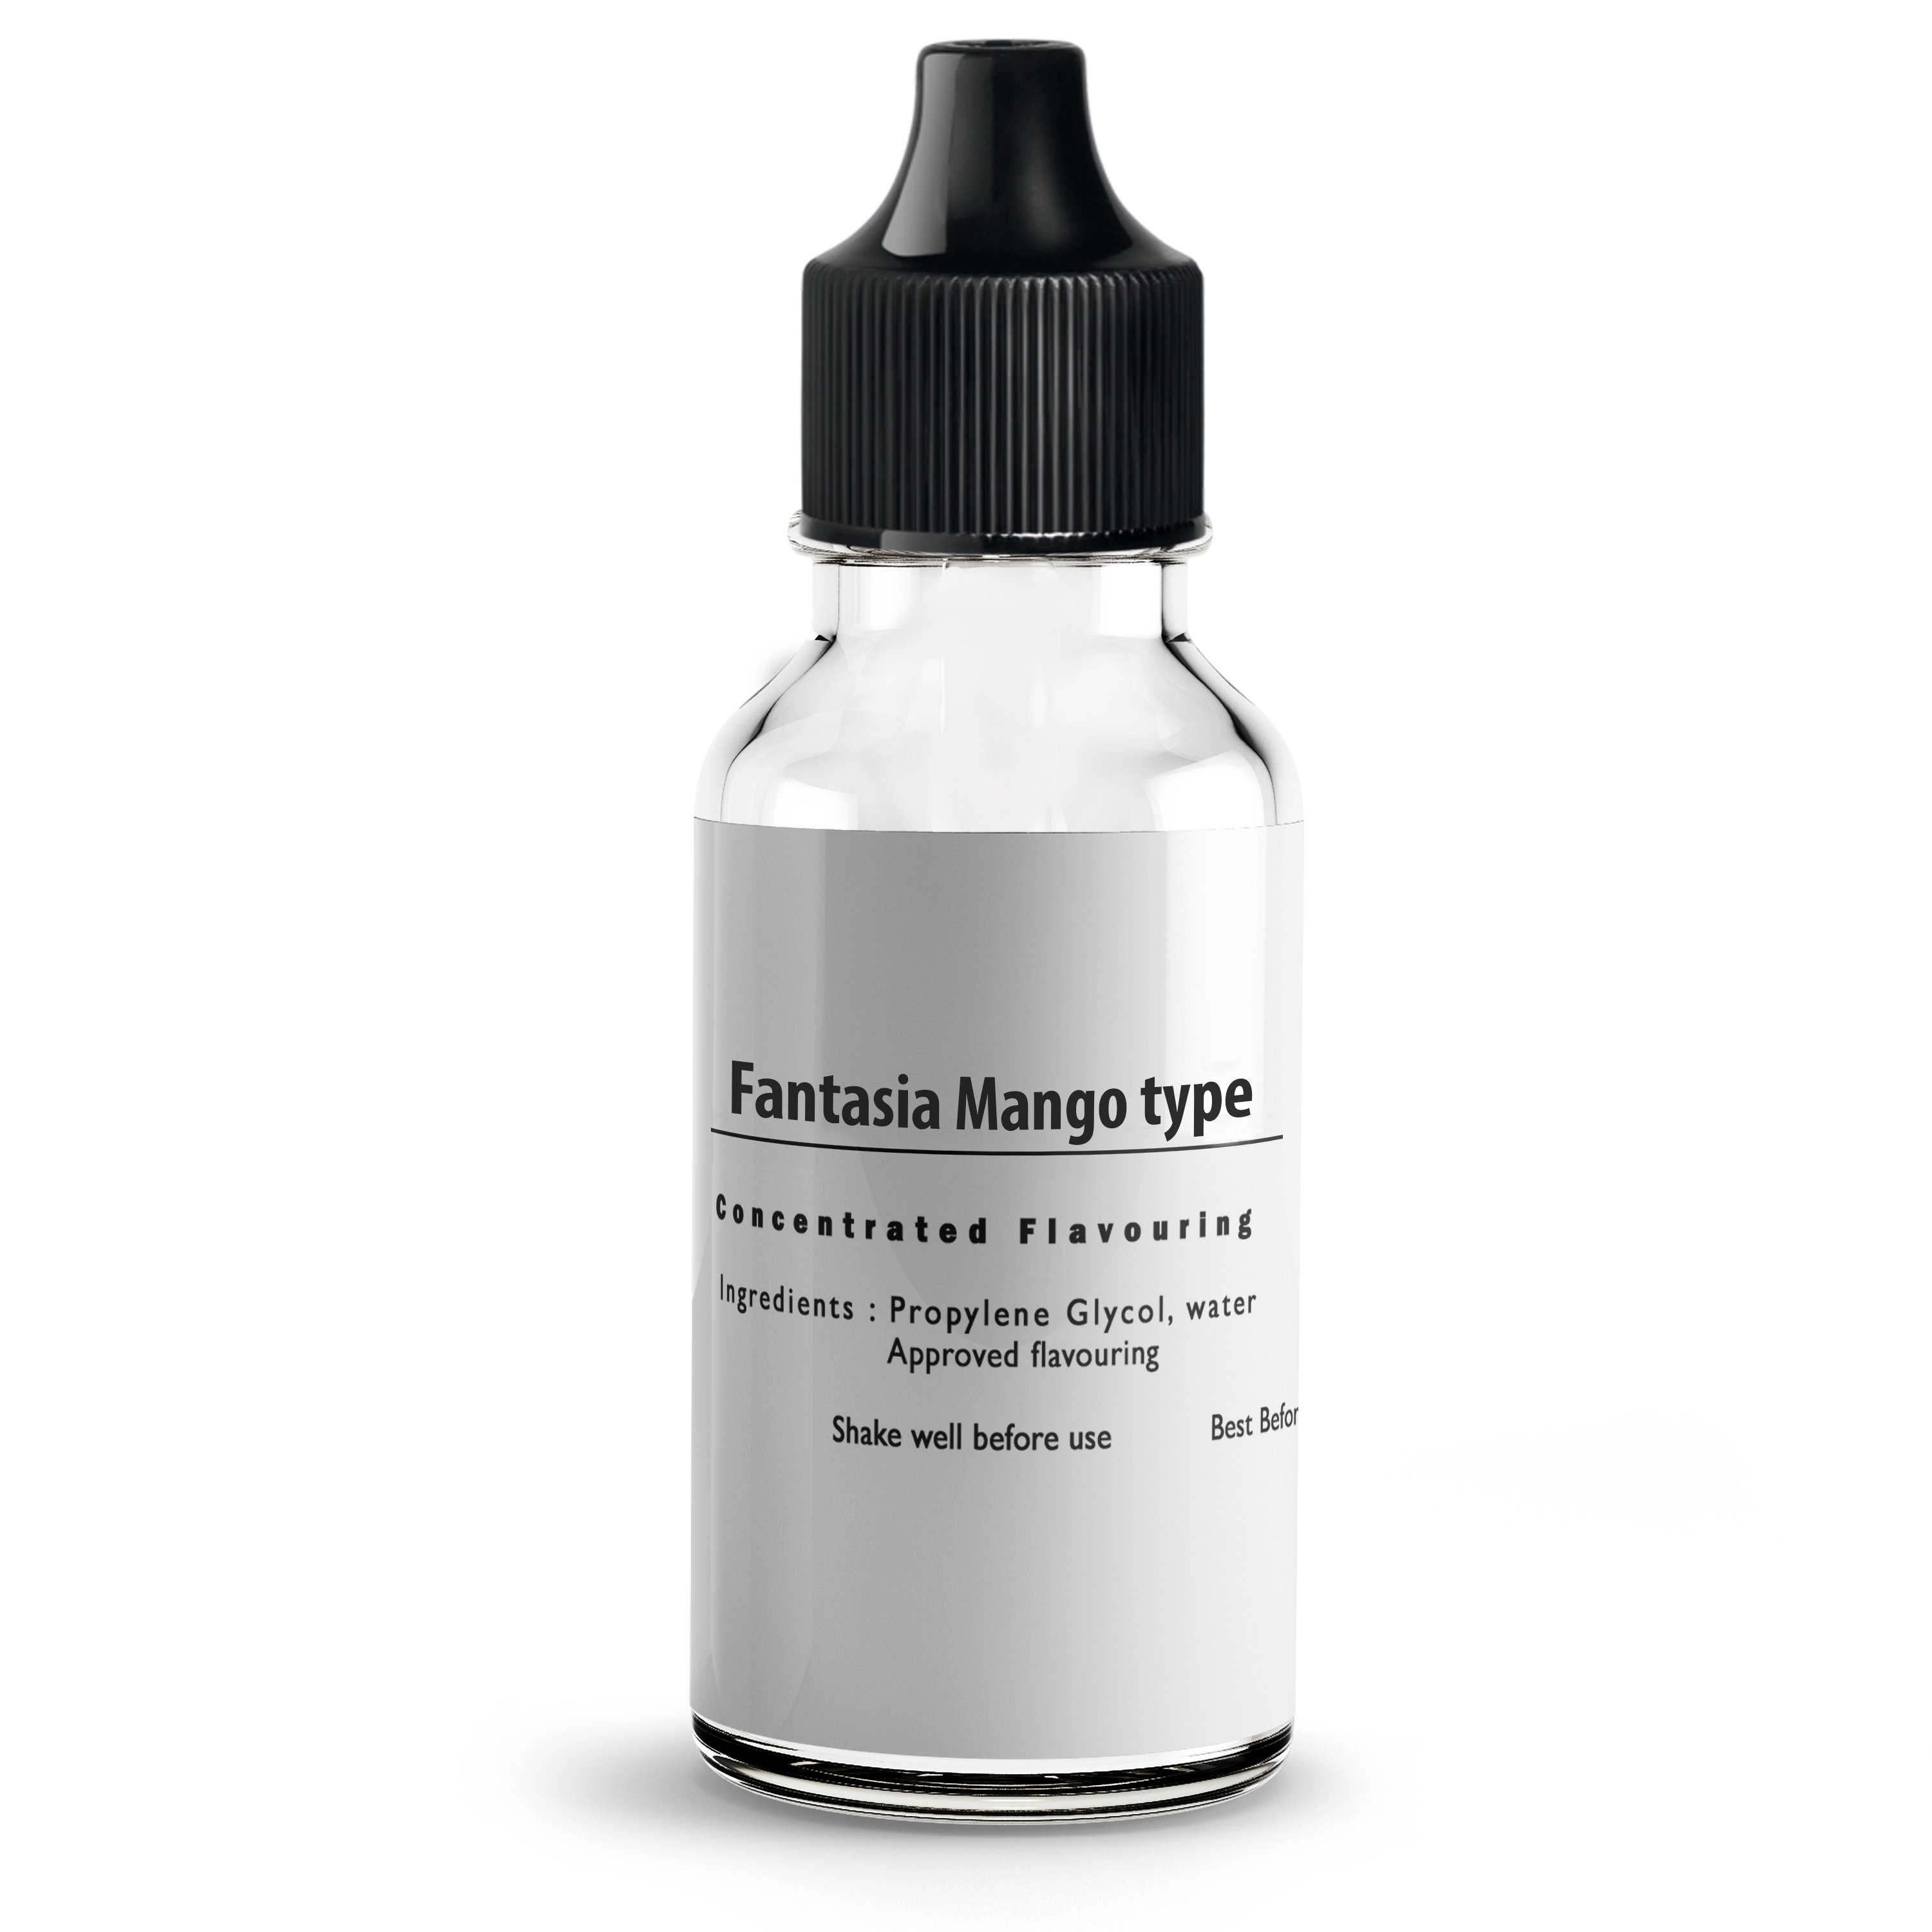 Fantazia Mango type flavour Concentrate for E liquids